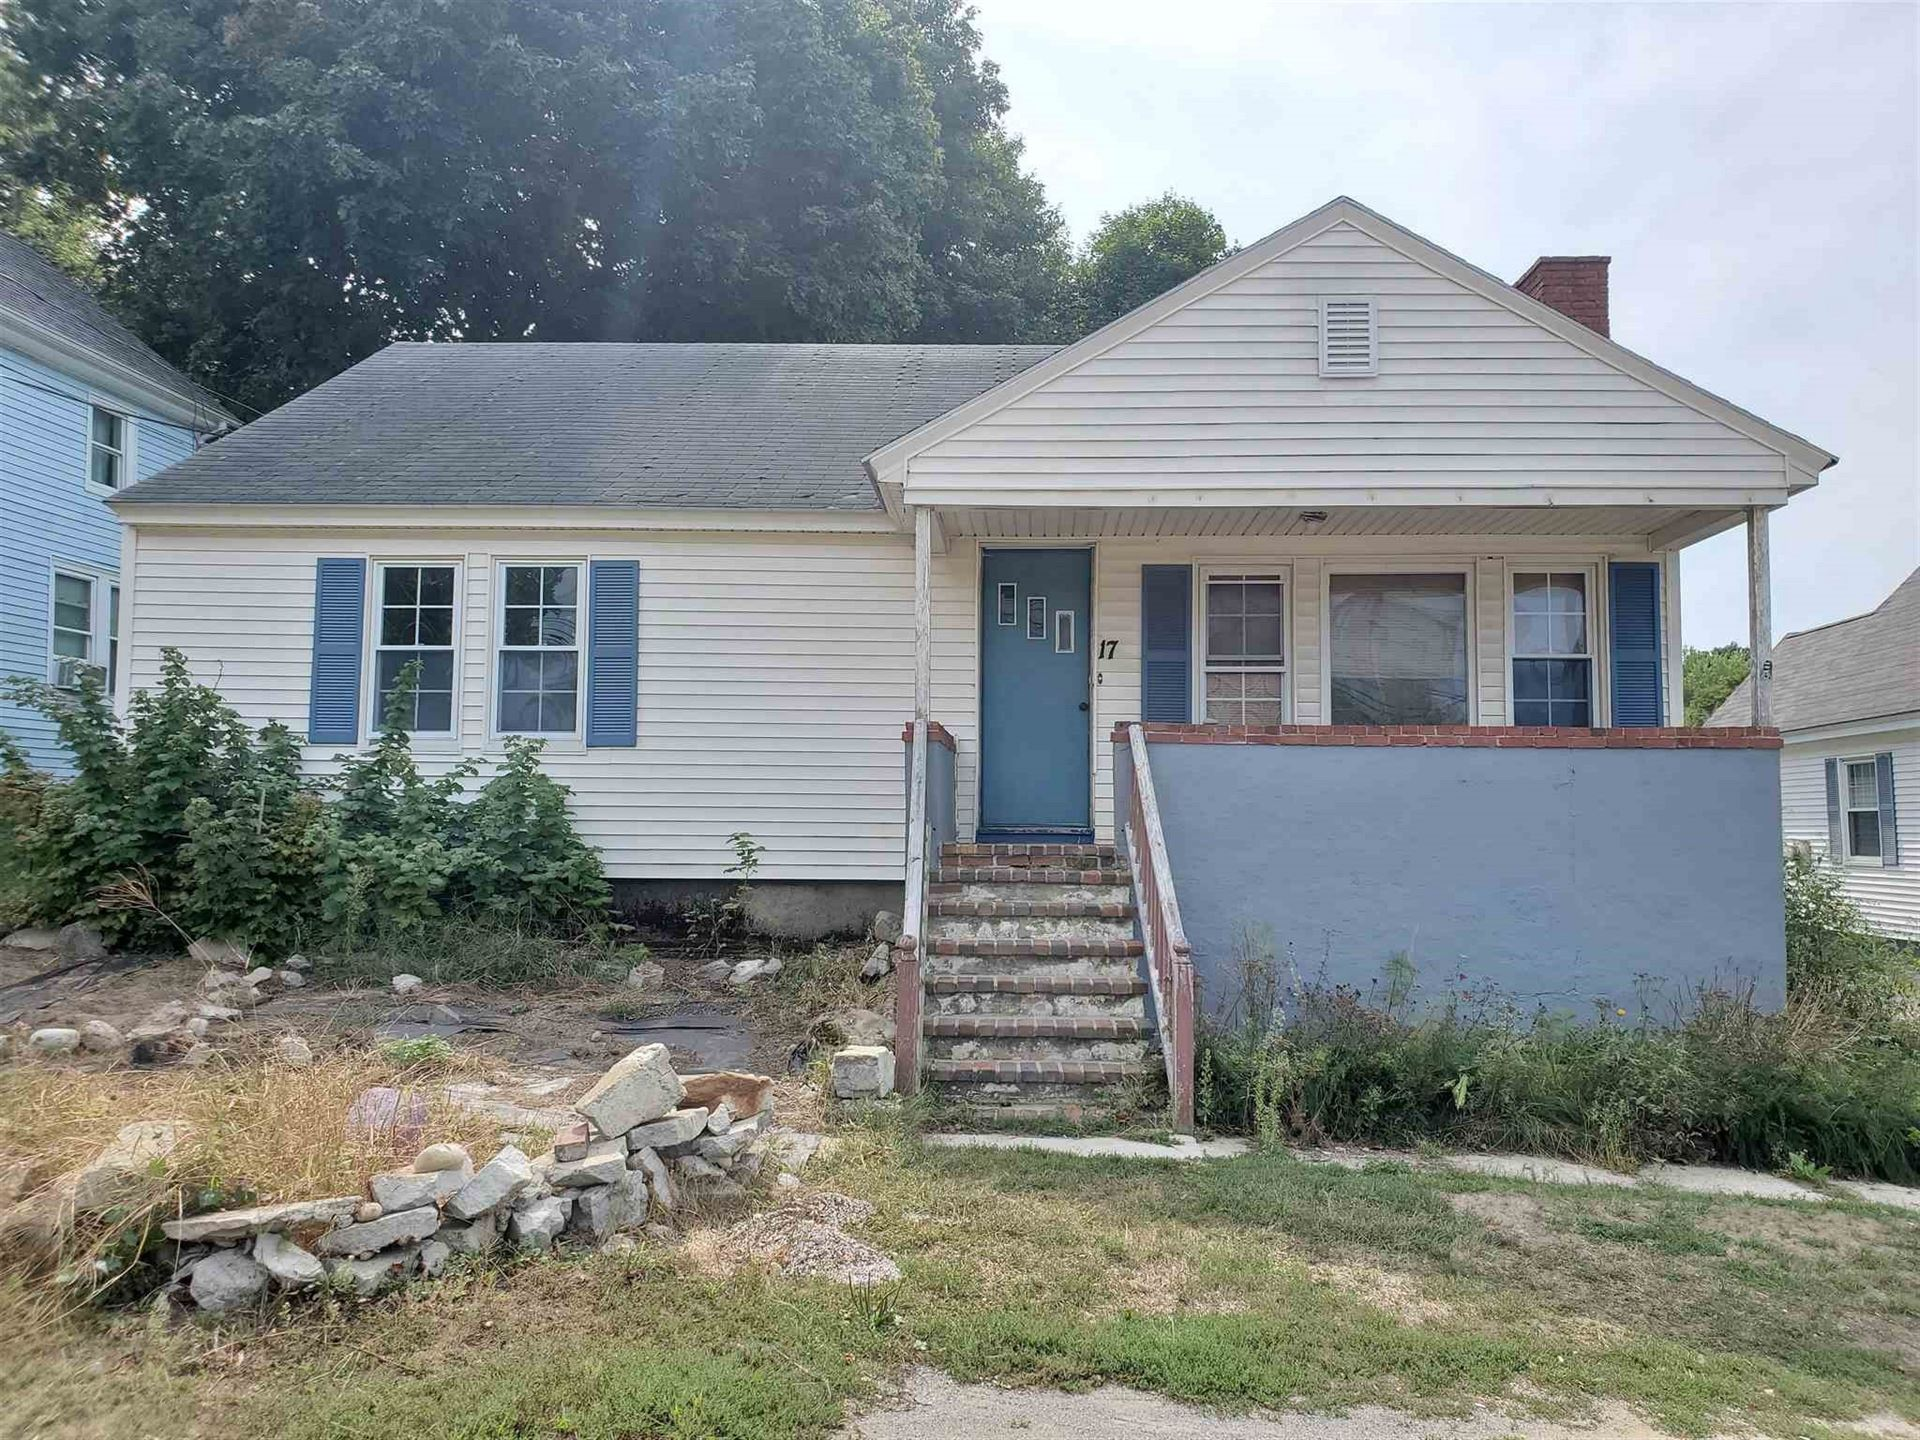 17 Rochester Hill Road, Rochester, NH 03867 - MLS#: 4828071